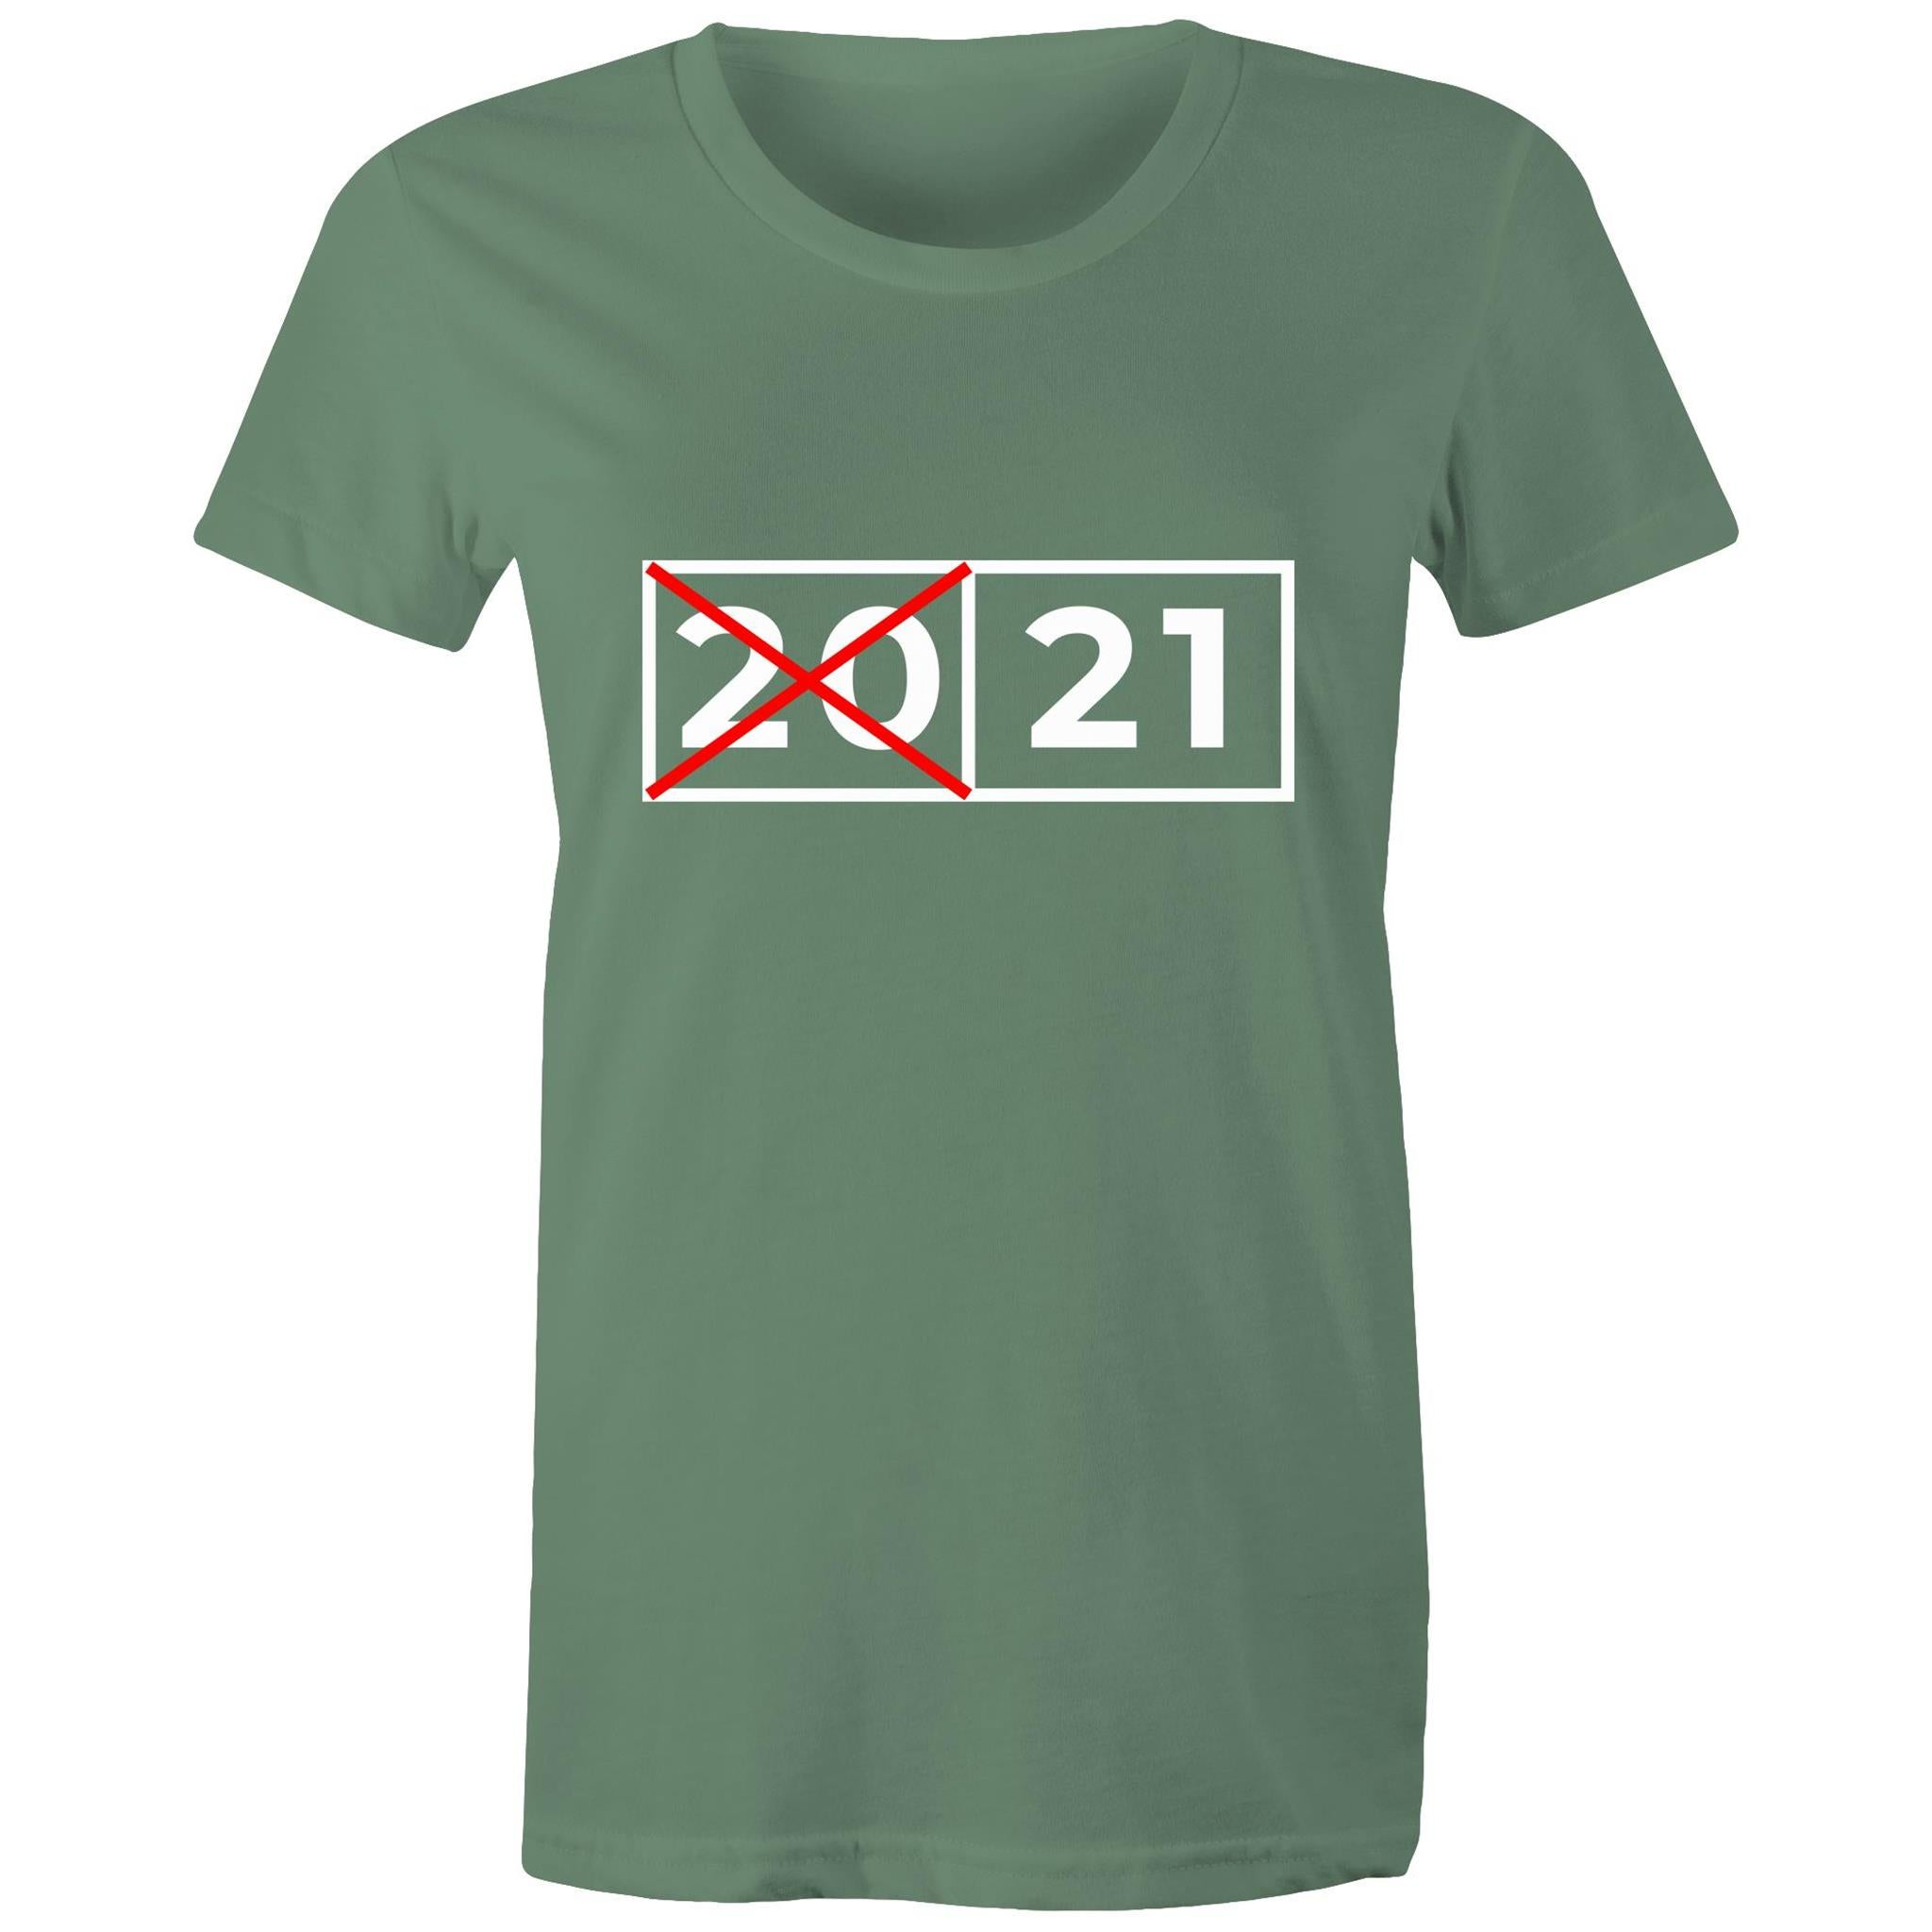 2021 with crossed out 20 (Womens XS - 2XL)